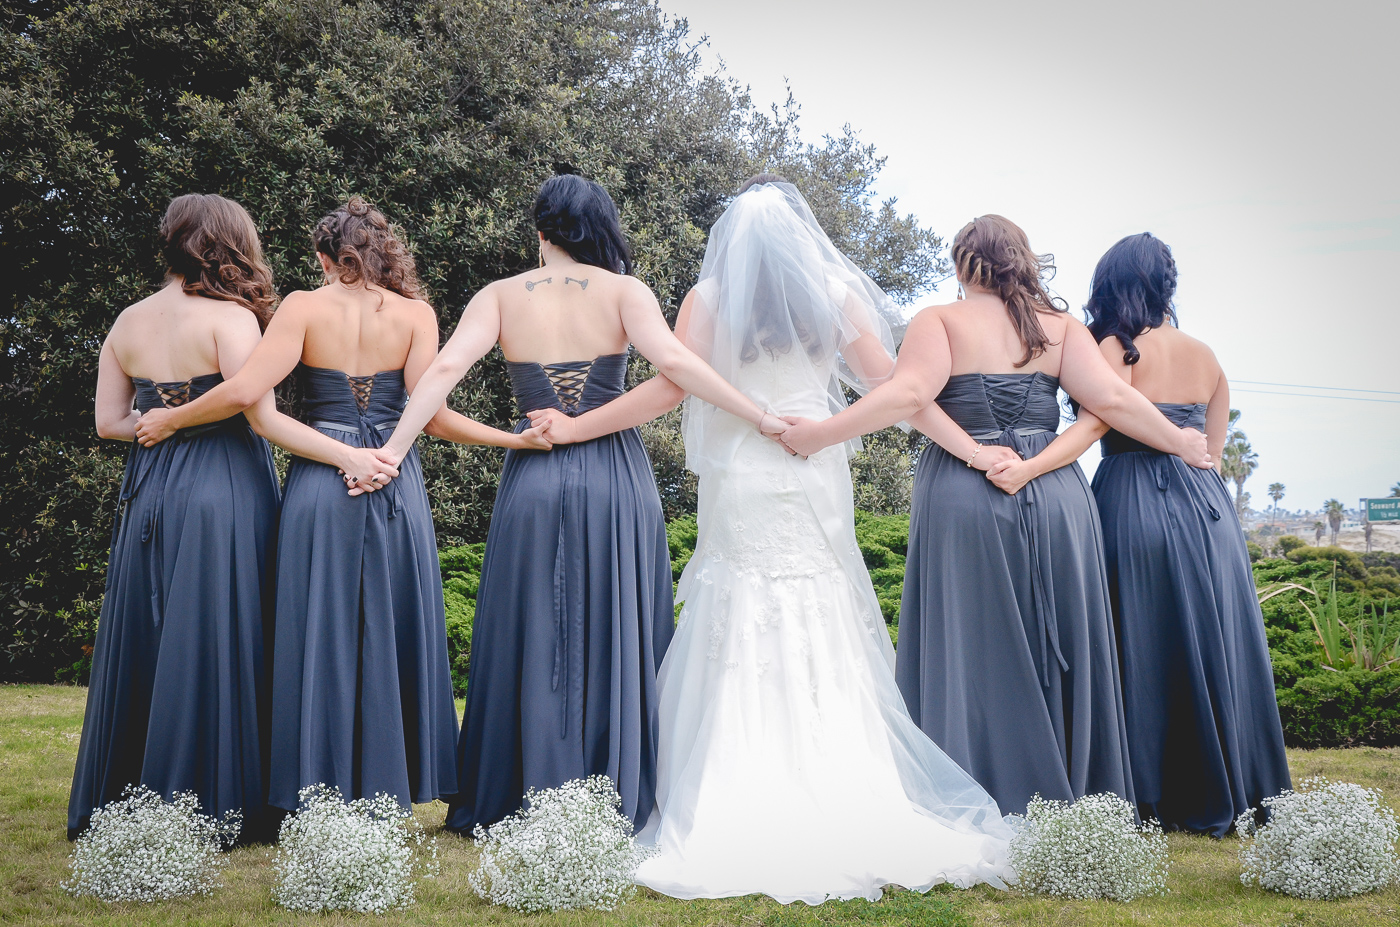 Bride with bridesmaids in grey dresses at wedding ceremony. Finally Forever Photography